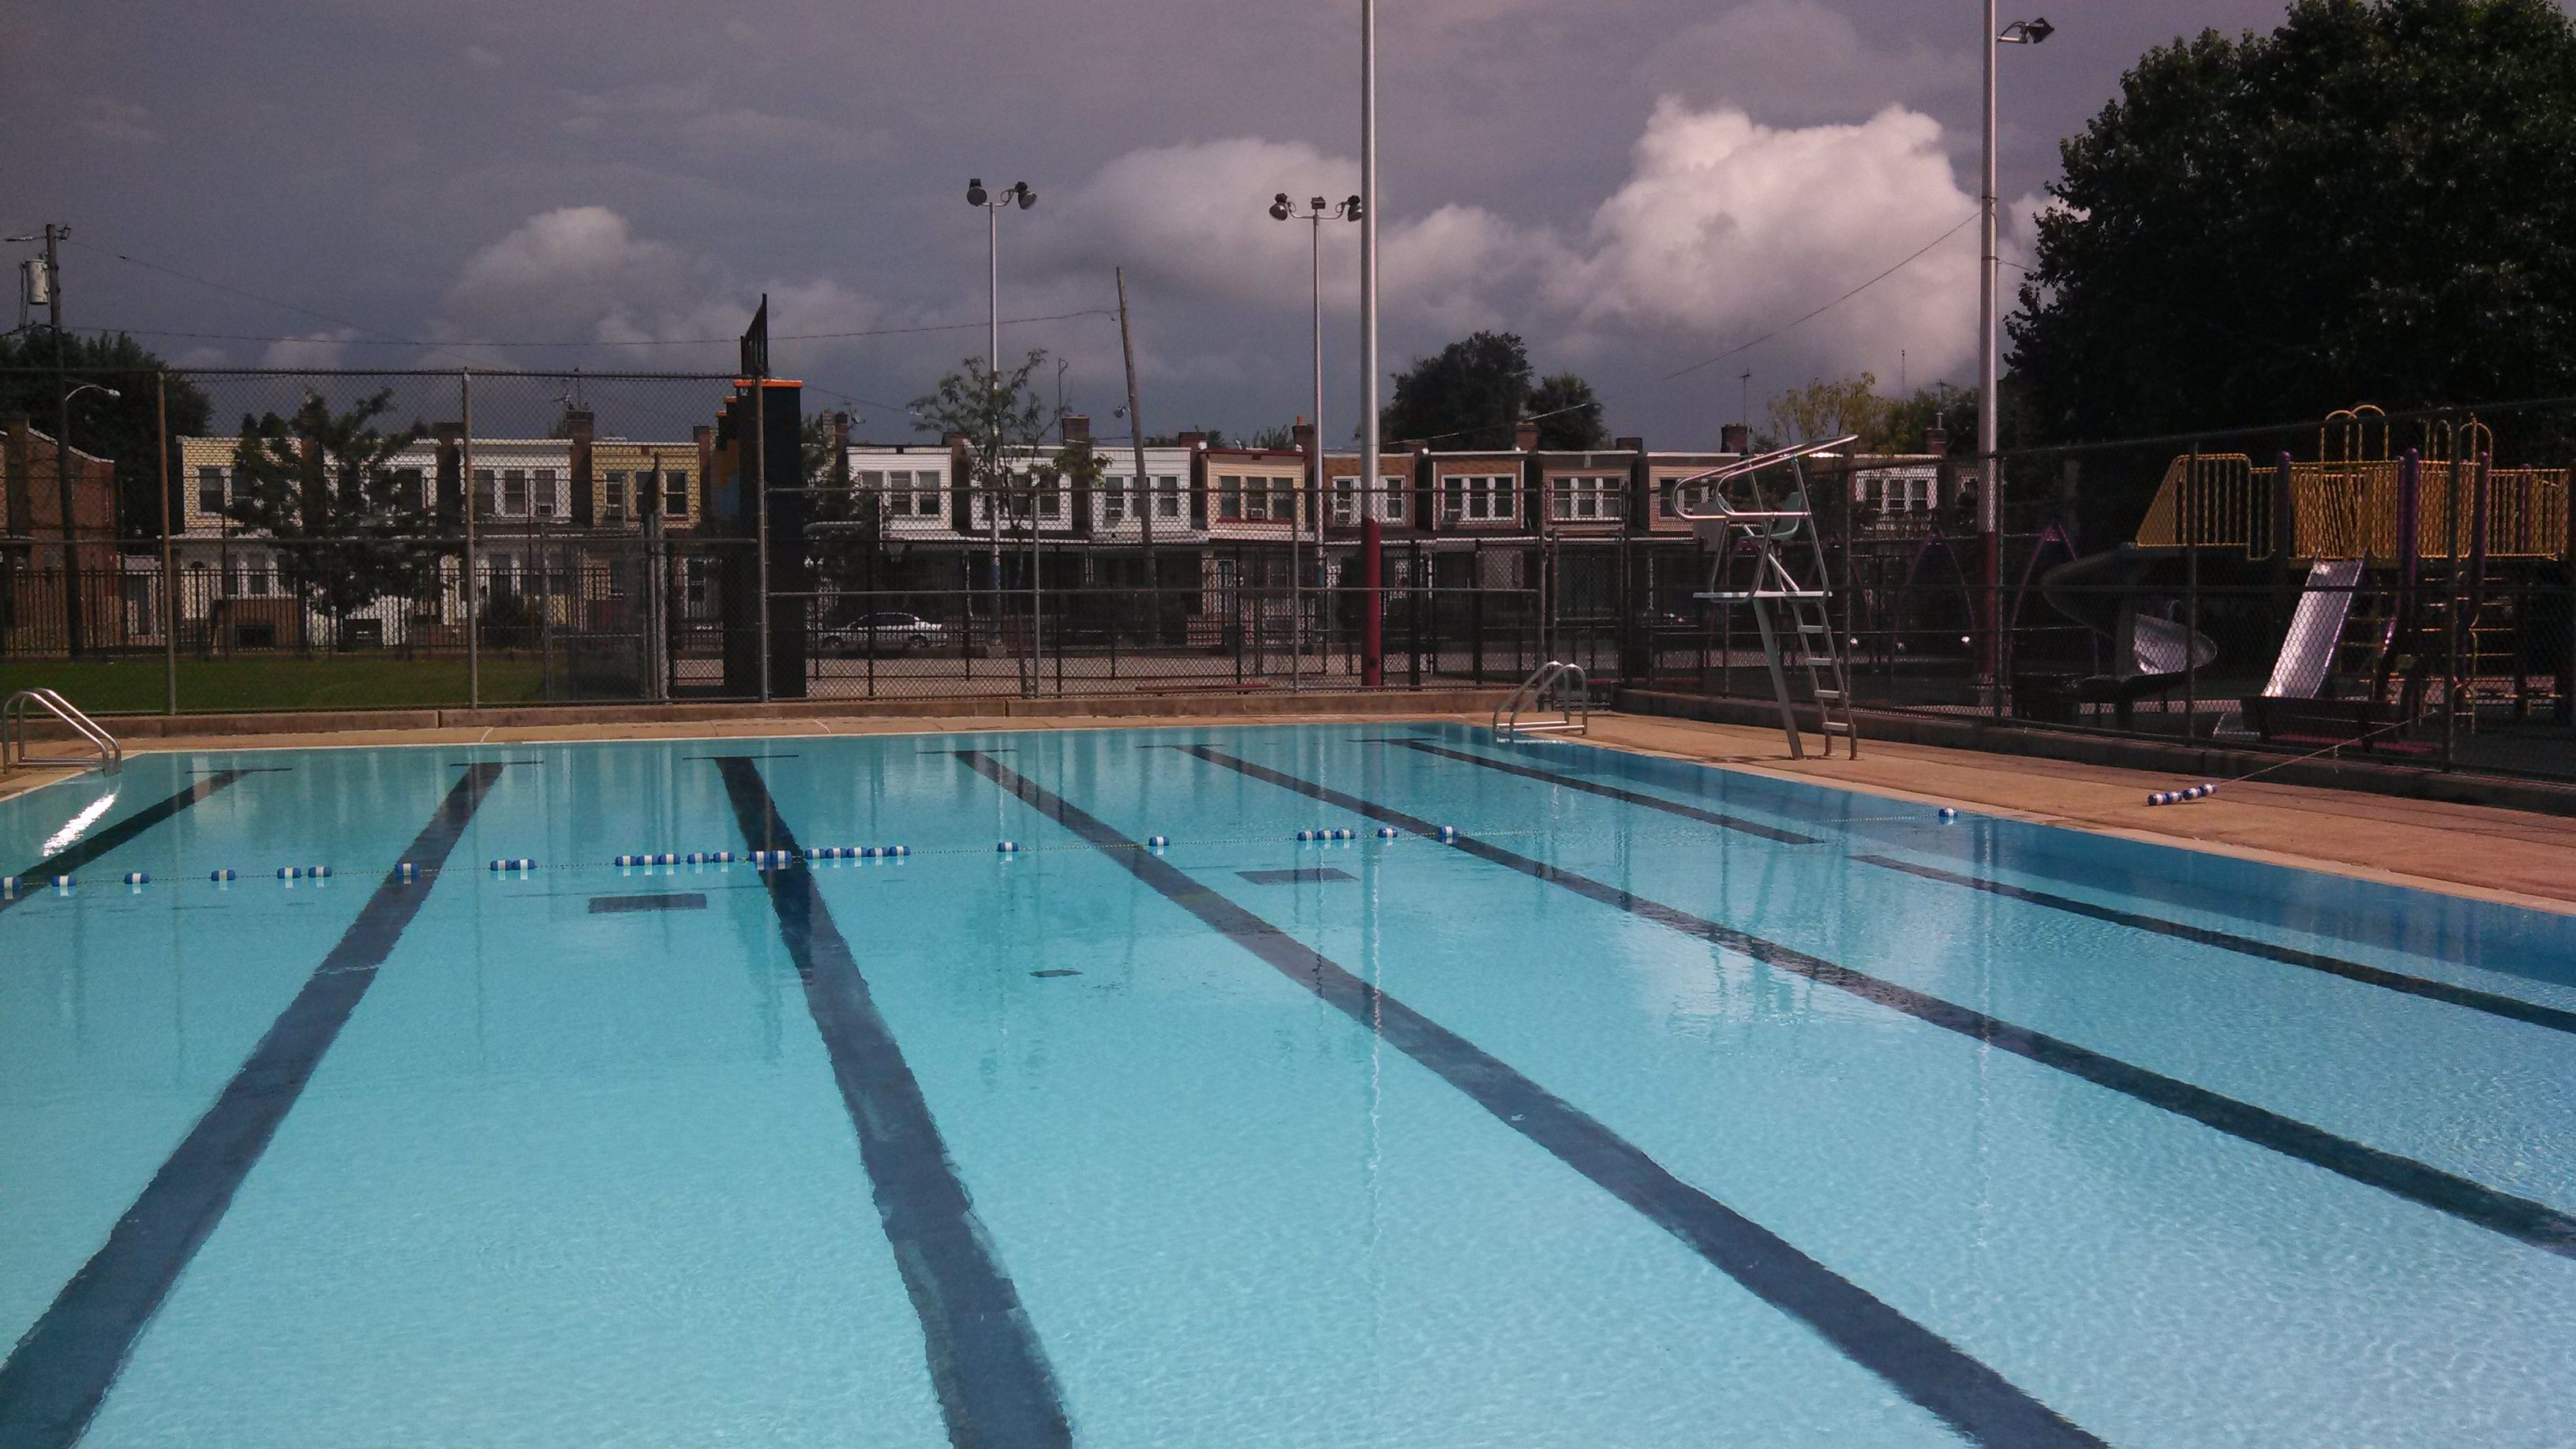 Feltonville (off Wyoming Between A And B, A Few Blocks South Of The  Boulevard): Iu0027m Excited This Pool Will Be Open, As I Havenu0027t Swum Here  Since 2013 And Am ...